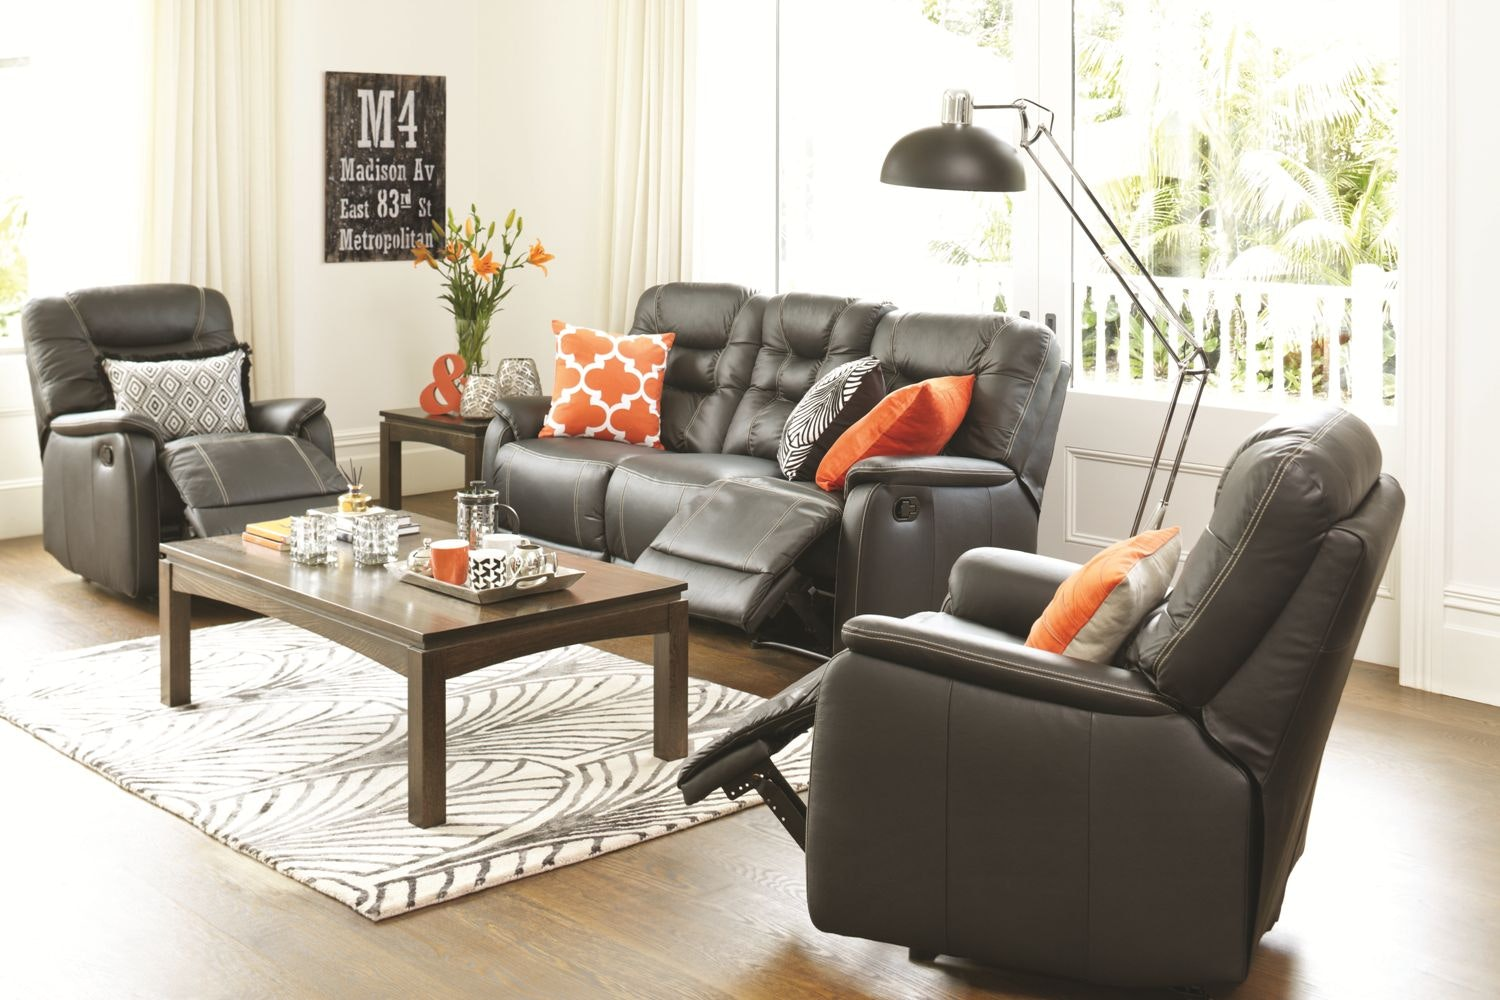 Elliot 3 Piece Leather Lounge Suite - Black